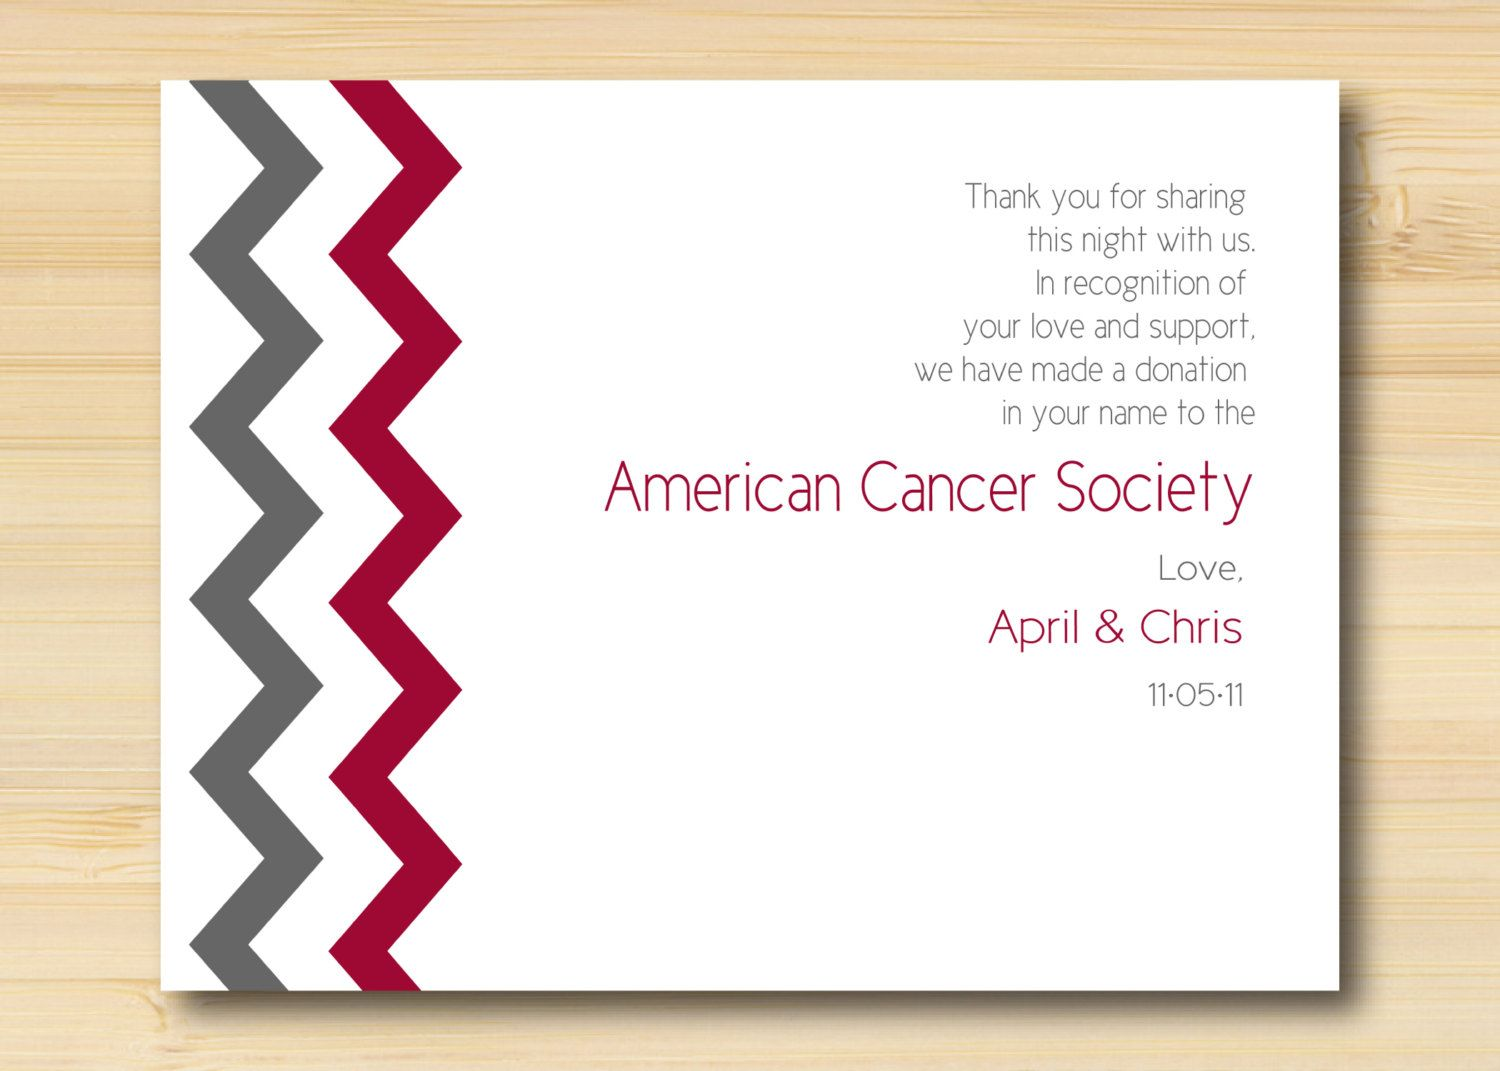 Charity Donation Favor Card For Your Wedding Or Event Chevron Design